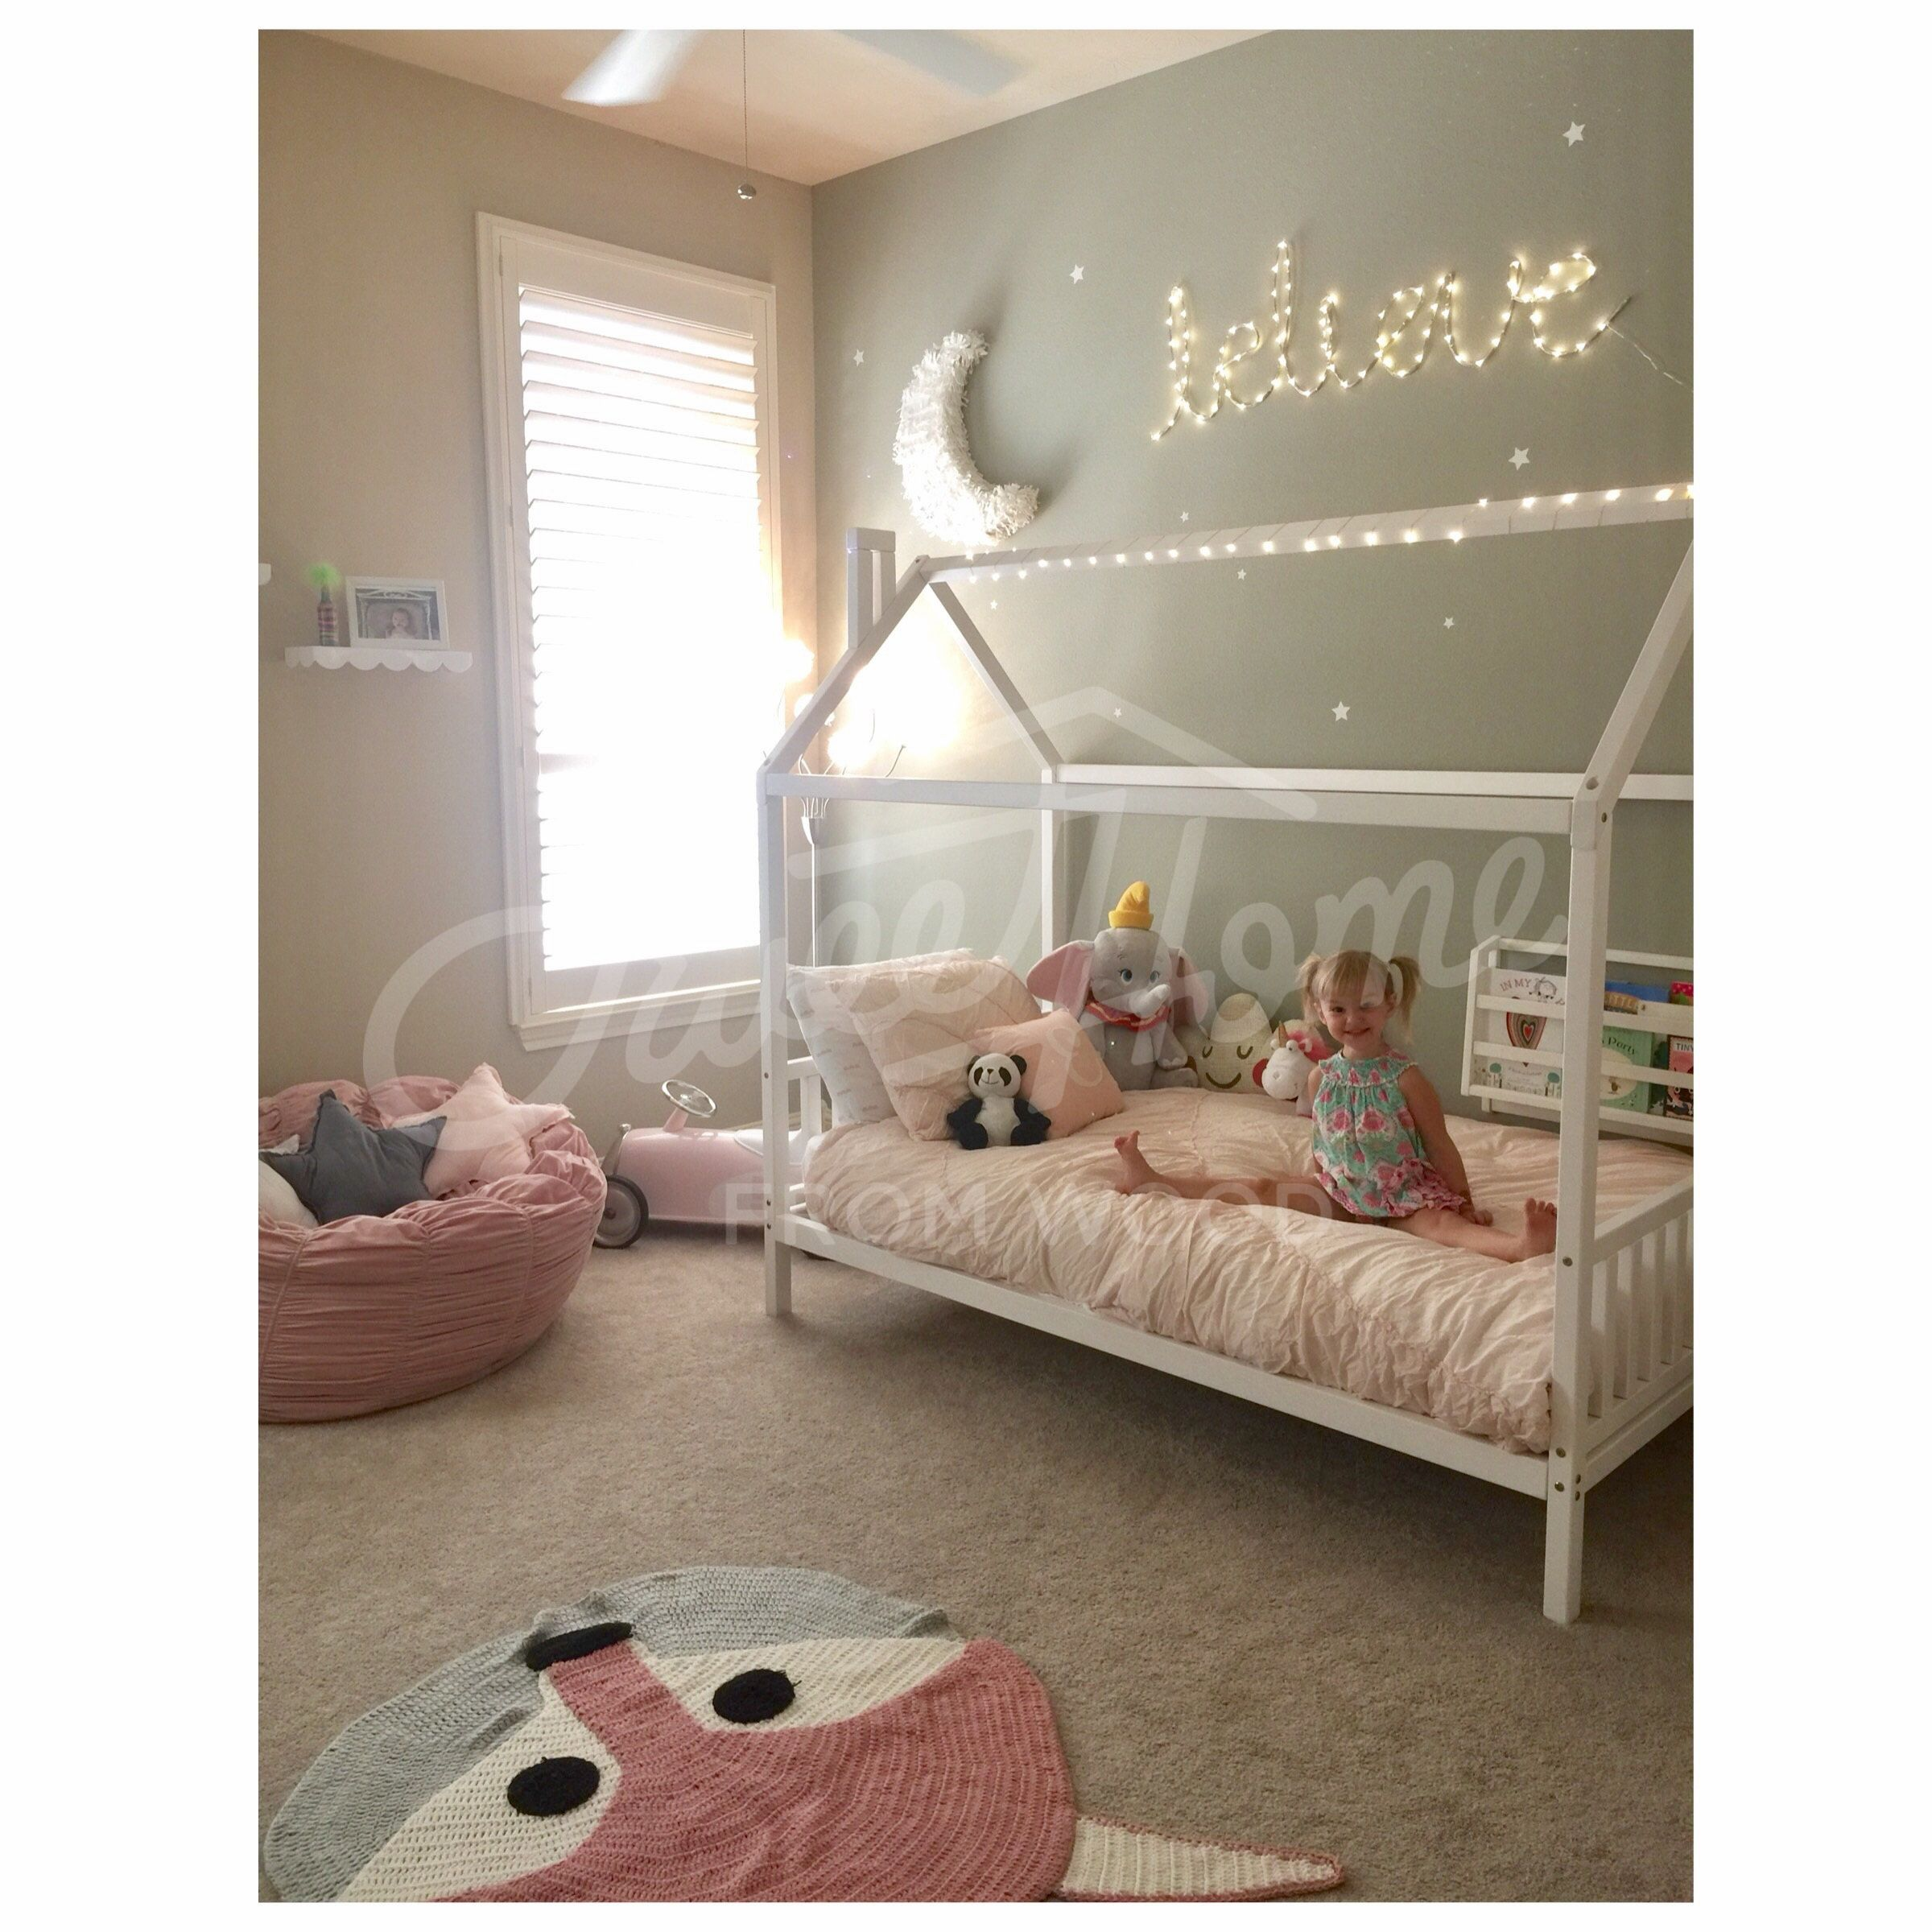 Kids Teepee Children Bed House Or Toddler House Bed Frame House